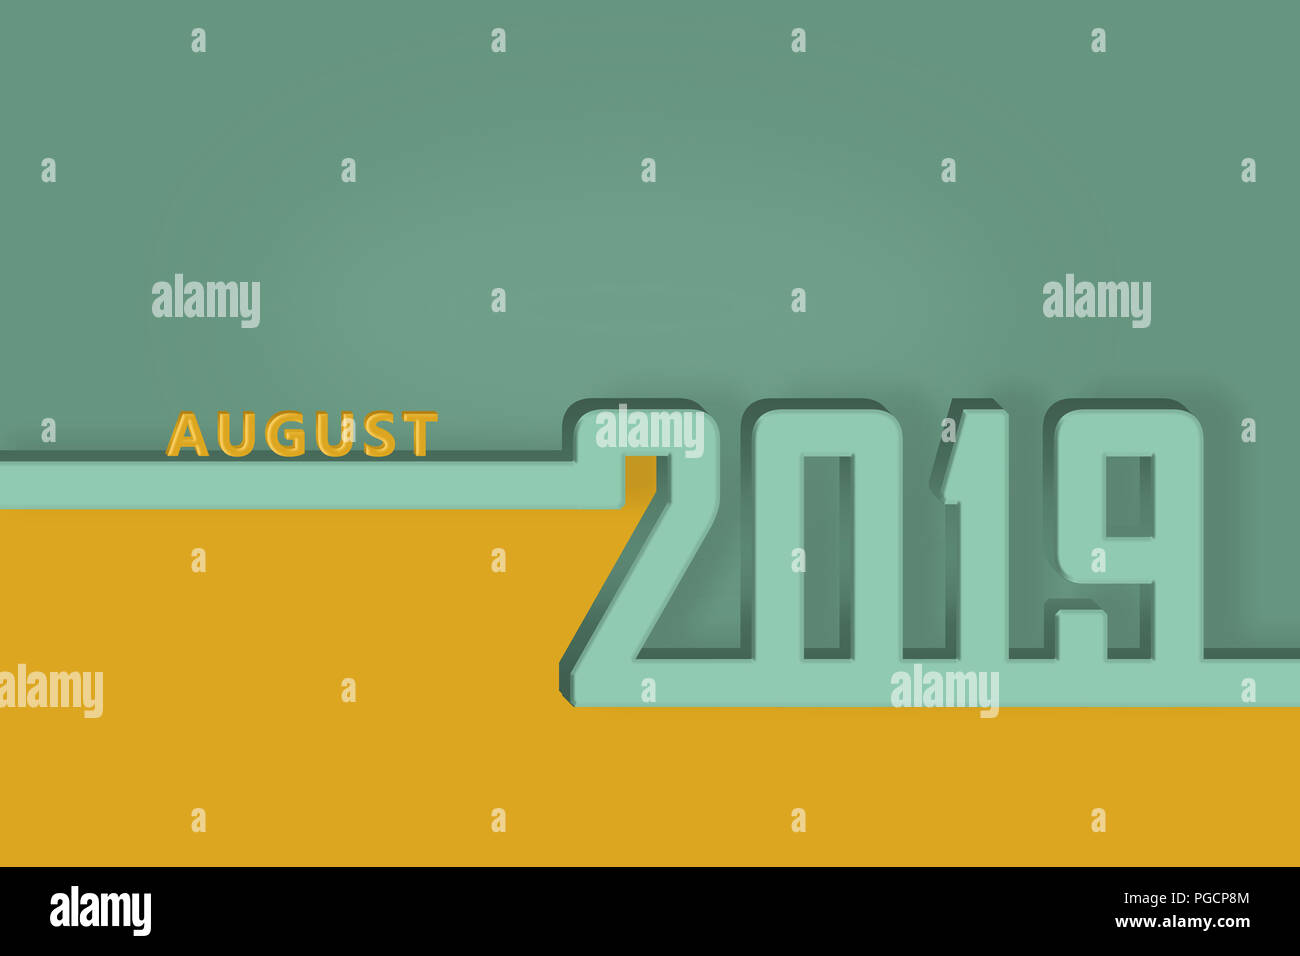 template for a calendar page presentation or congratulations august of the new year 2019